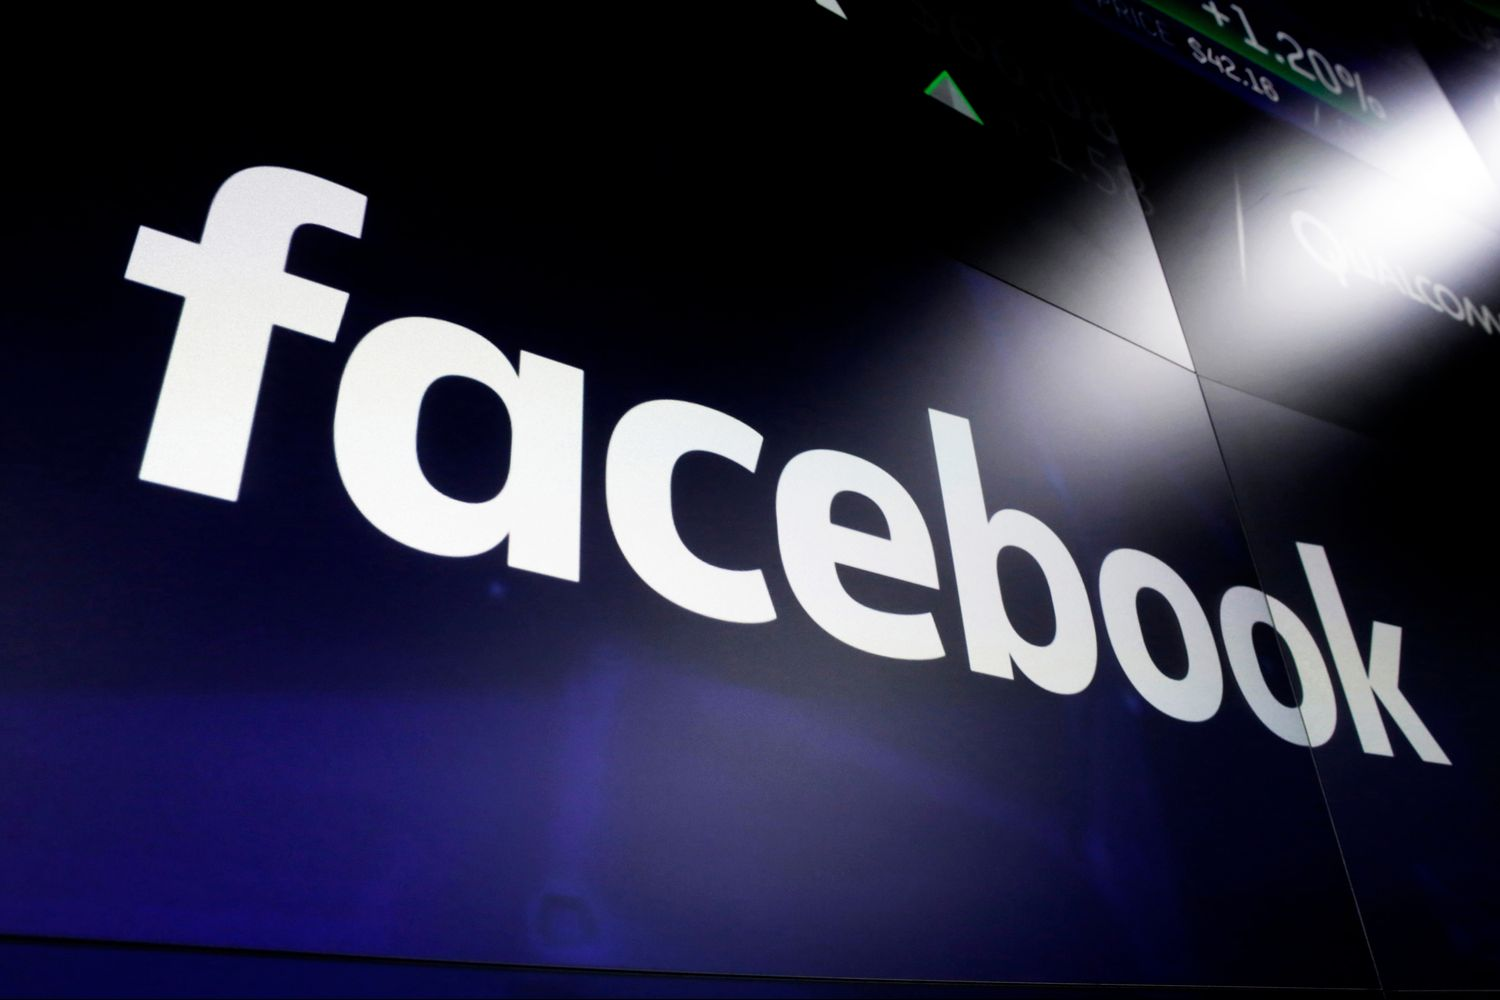 Facebook's logo is seen on screens at the Nasdaq MarketSite in New York's Times Square in March 2018. (AP file photo)